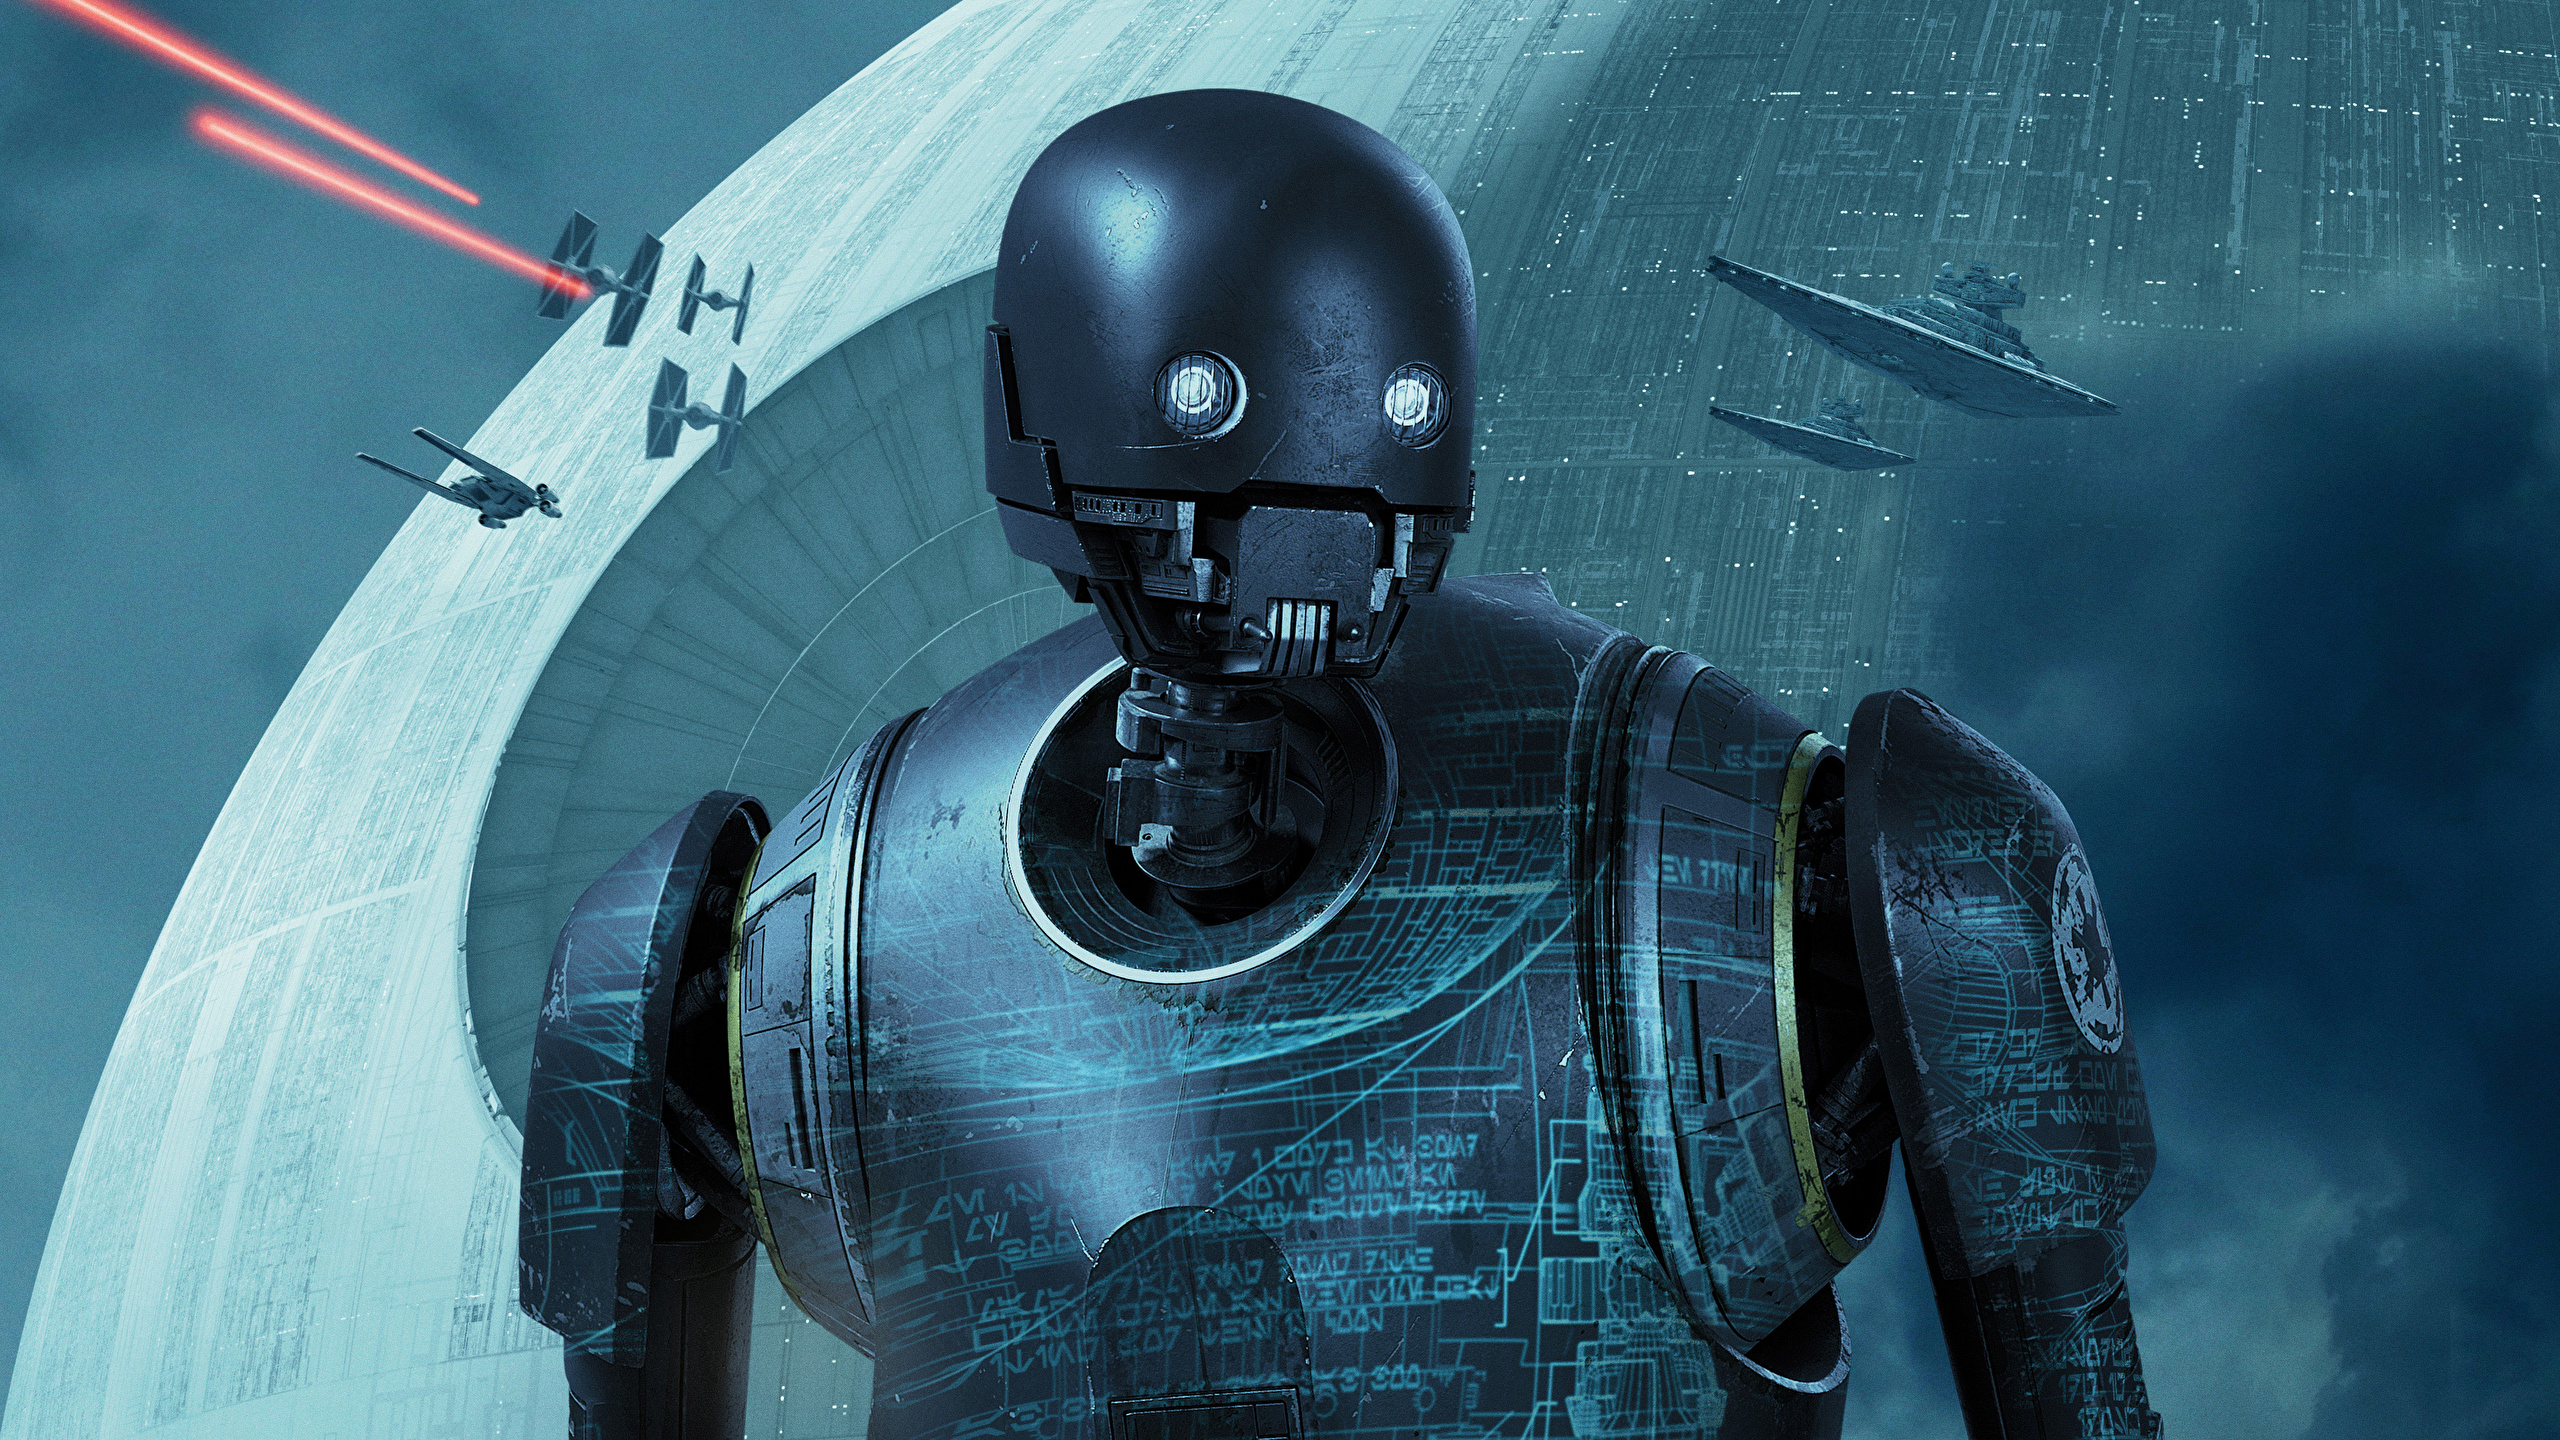 Wallpaper Rogue One A Star Wars Story Robot K 2so Movies 2560x1440